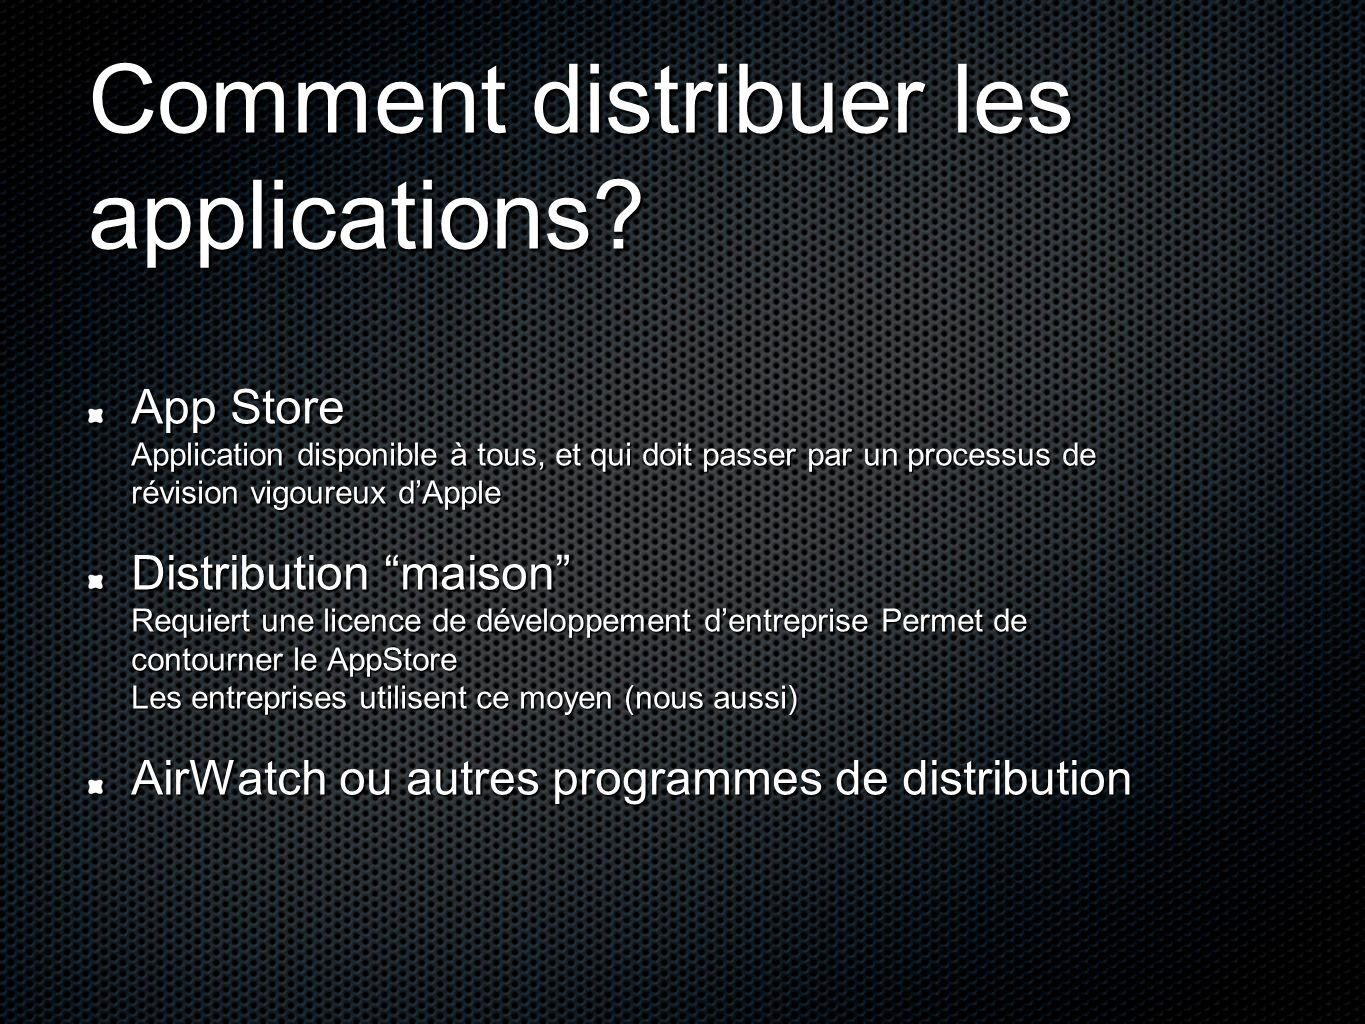 Comment distribuer les applications